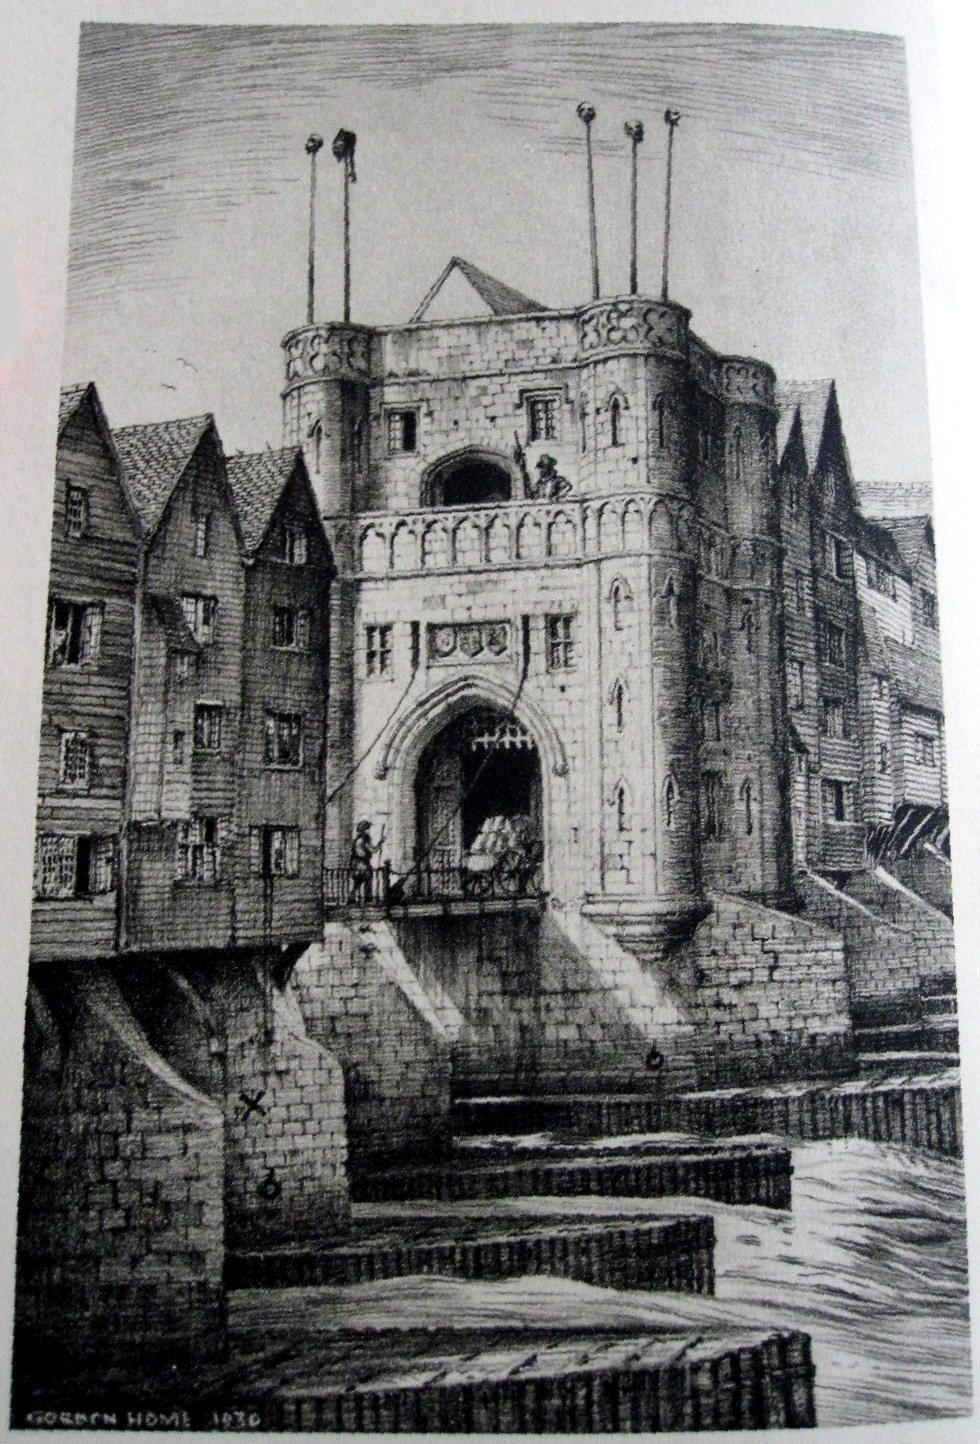 The Drawbridge Gate of Old London Bridge. Built in 30 and pulled